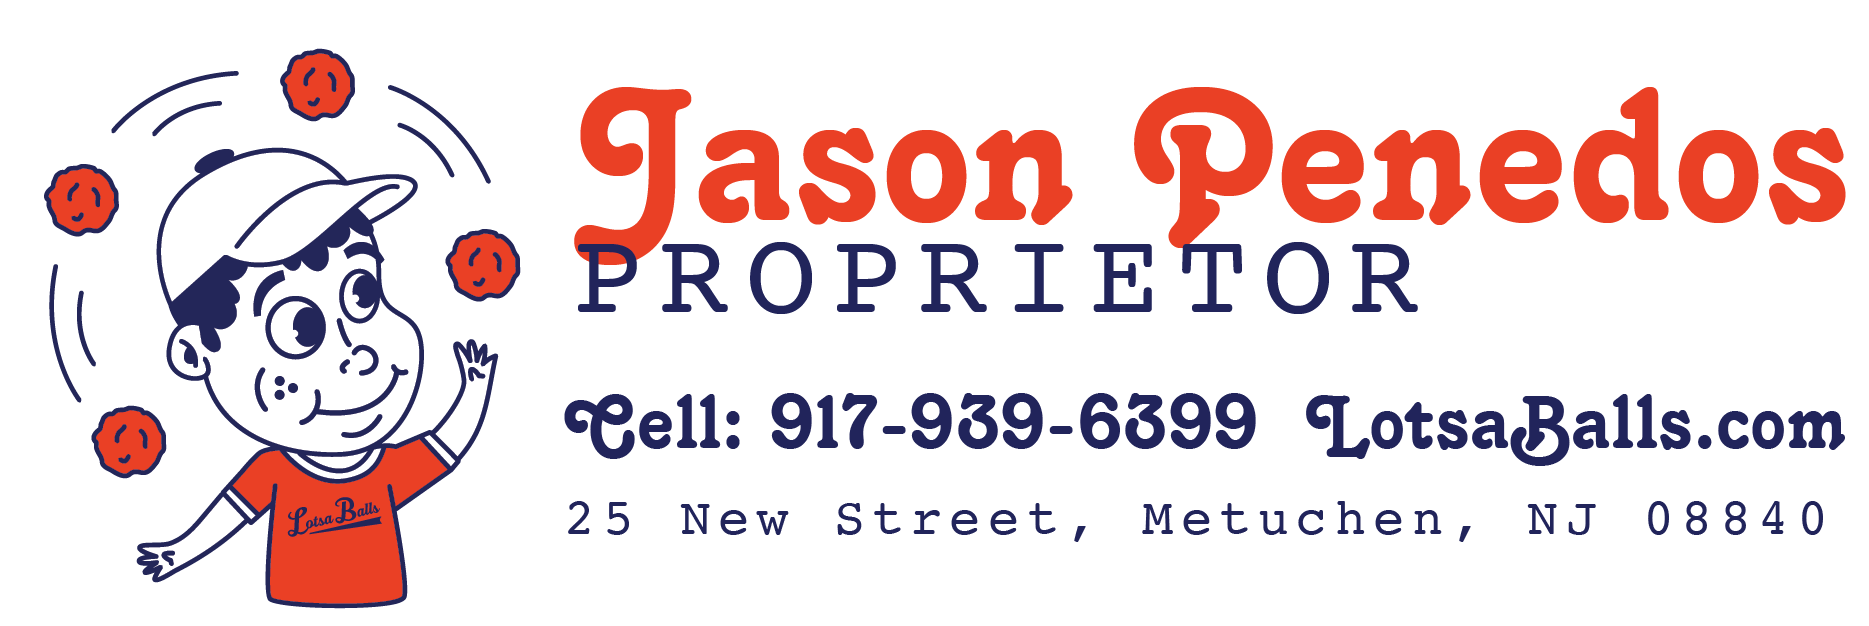 LOT-Email-Signature-Selections-Jason-01.png